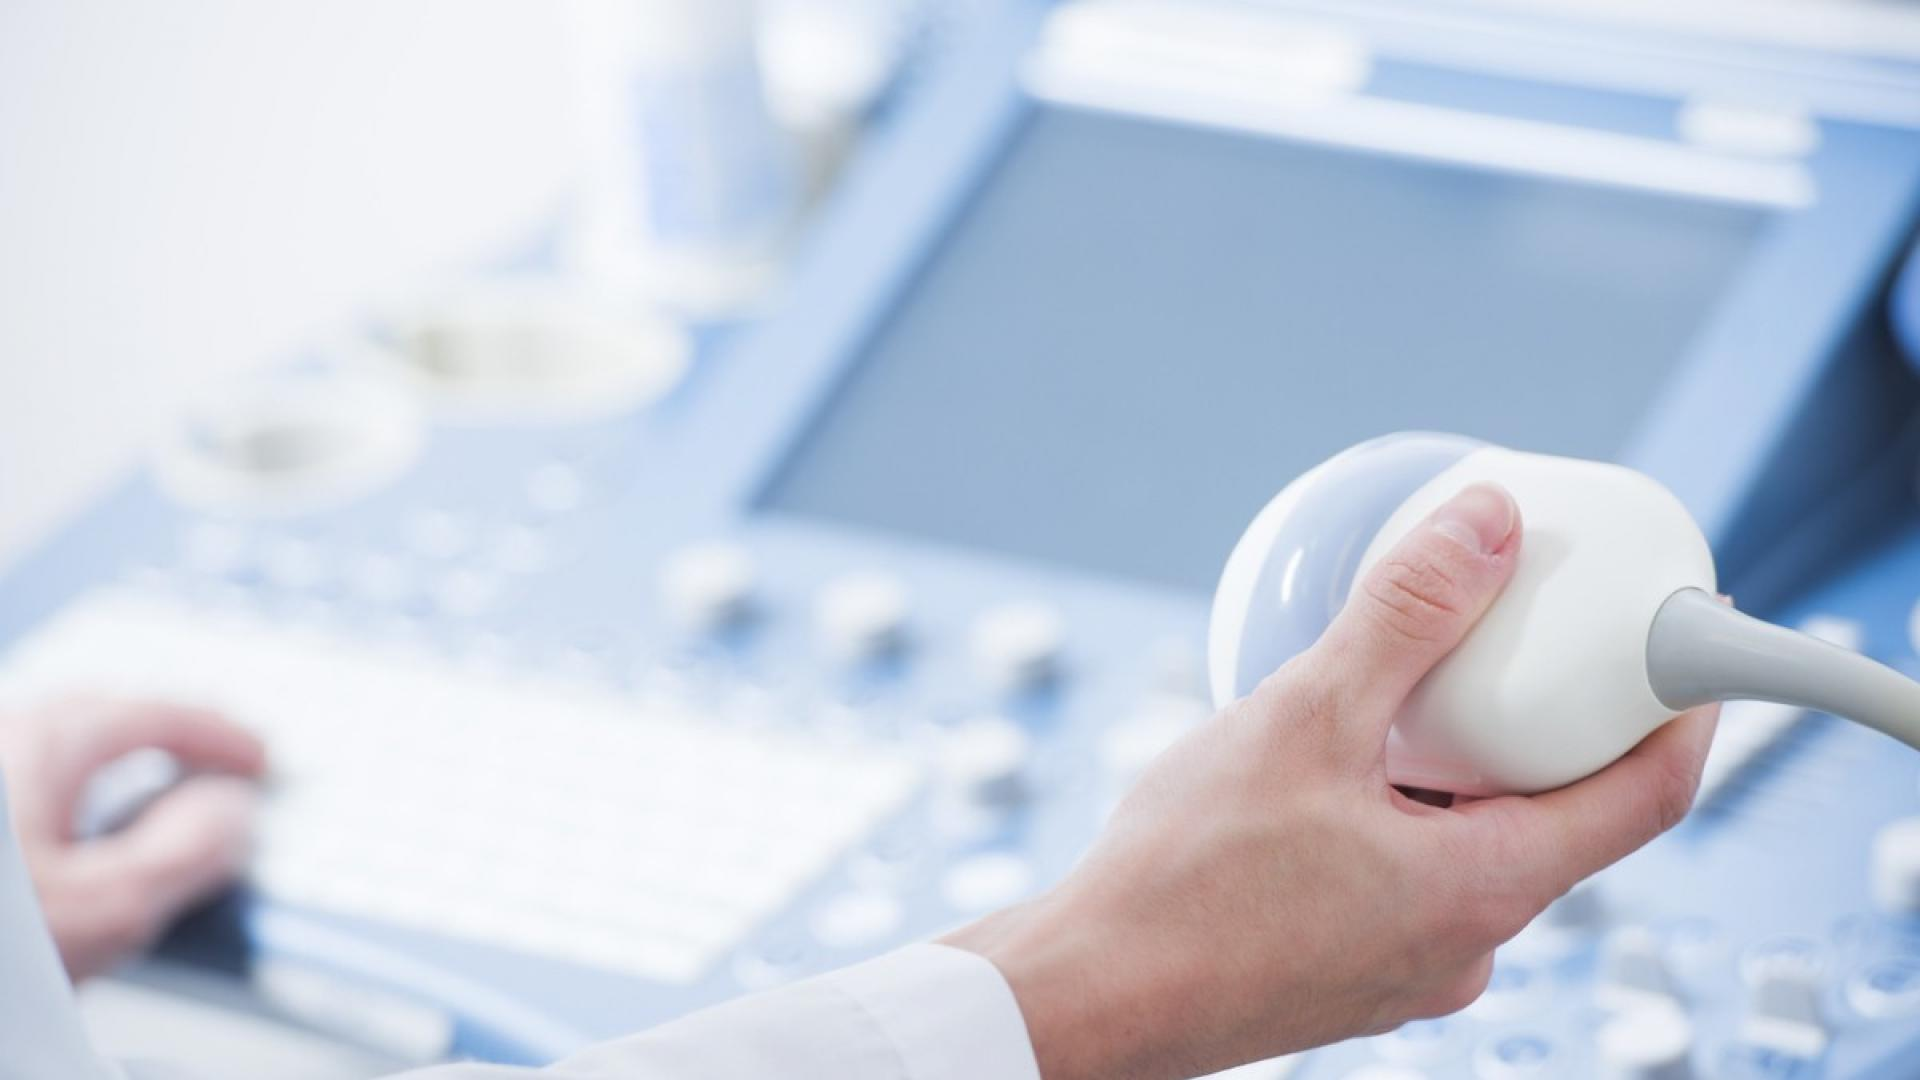 Ultrasound waves could improve cognitive function in dementia patients